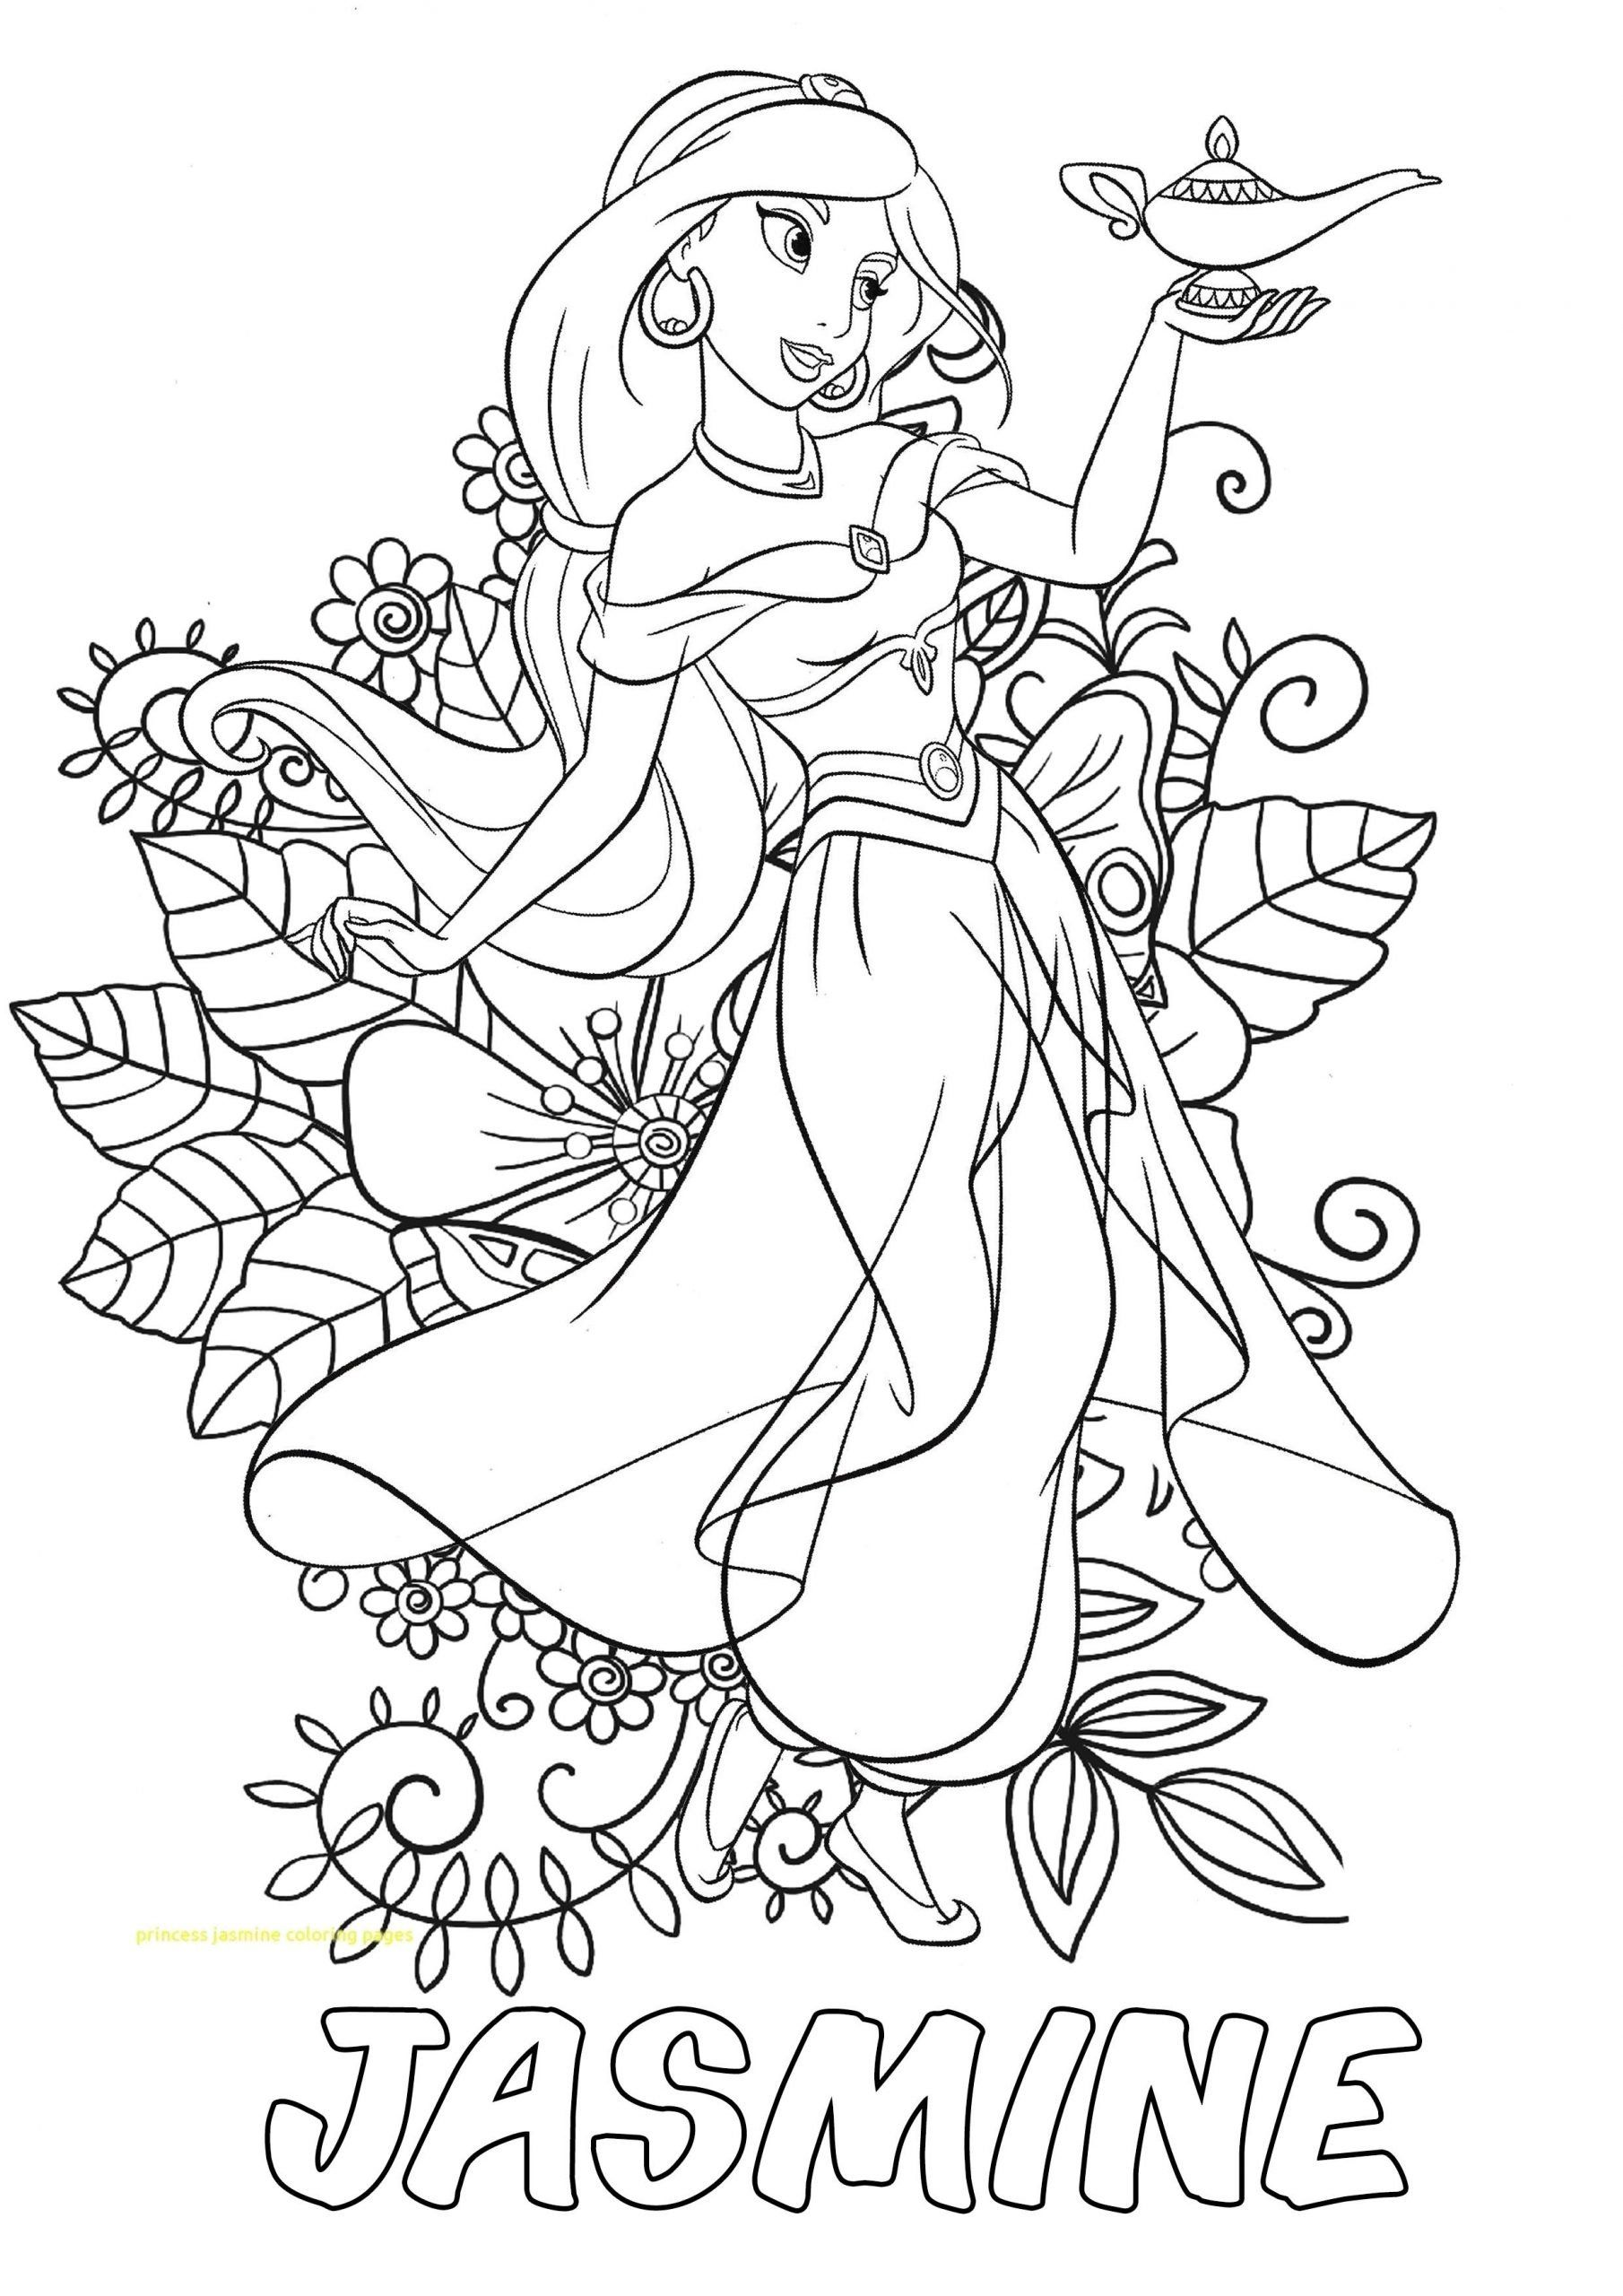 Aladdin And Jasmine Coloring Pages Jasmine Aladdin Disney Coloring Pages With Flow Disney Coloring Pages Princess Coloring Pages Disney Princess Coloring Pages